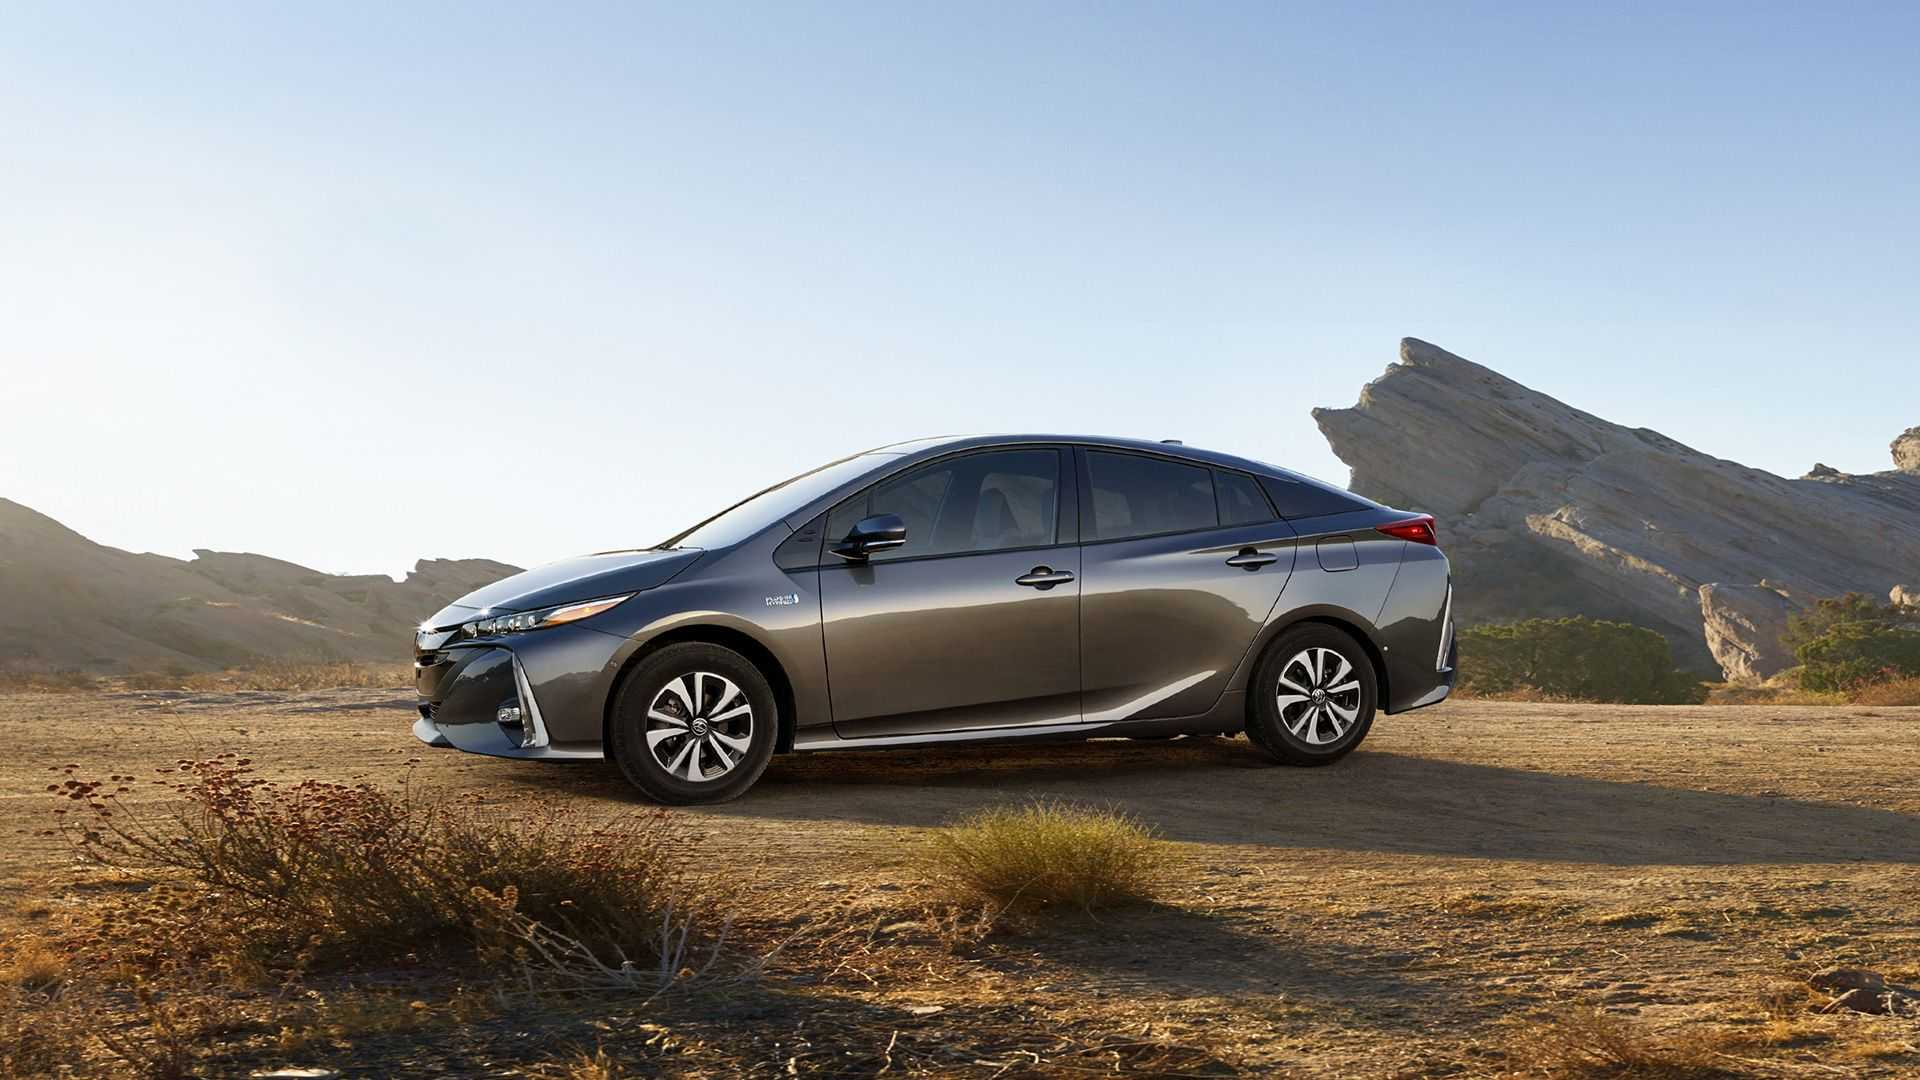 Real World Road Test Results For Toyota Prius Prime It S Electric Only Provided The Battery Is Charged